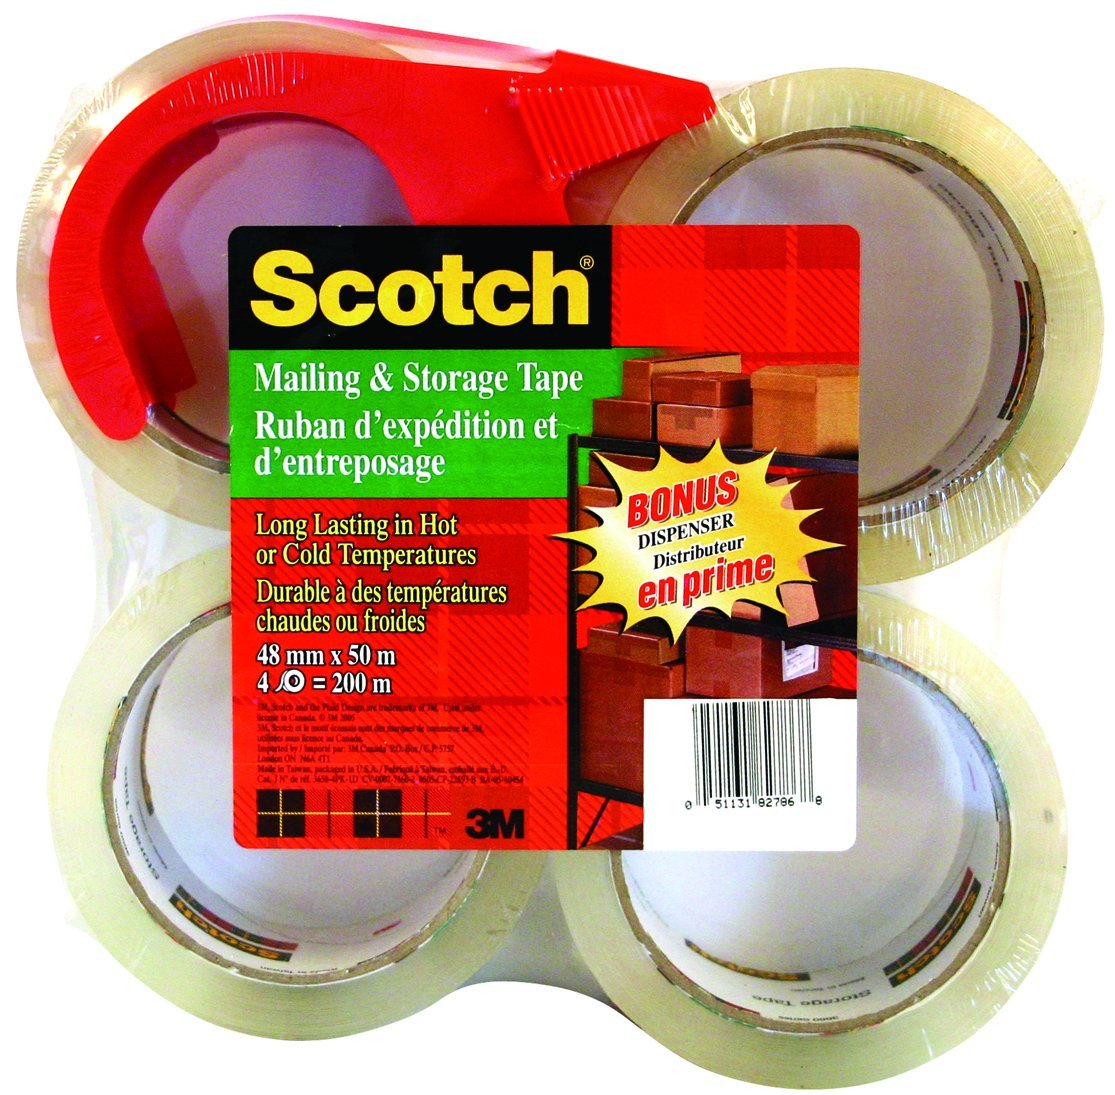 Scotch Mailing and Storage-Packaging Tape, Clear, Bonus Dispenser Included, 48mm X 50m (Per Roll), 4 Rolls, (3650-4PK-D) 3M Canada Company